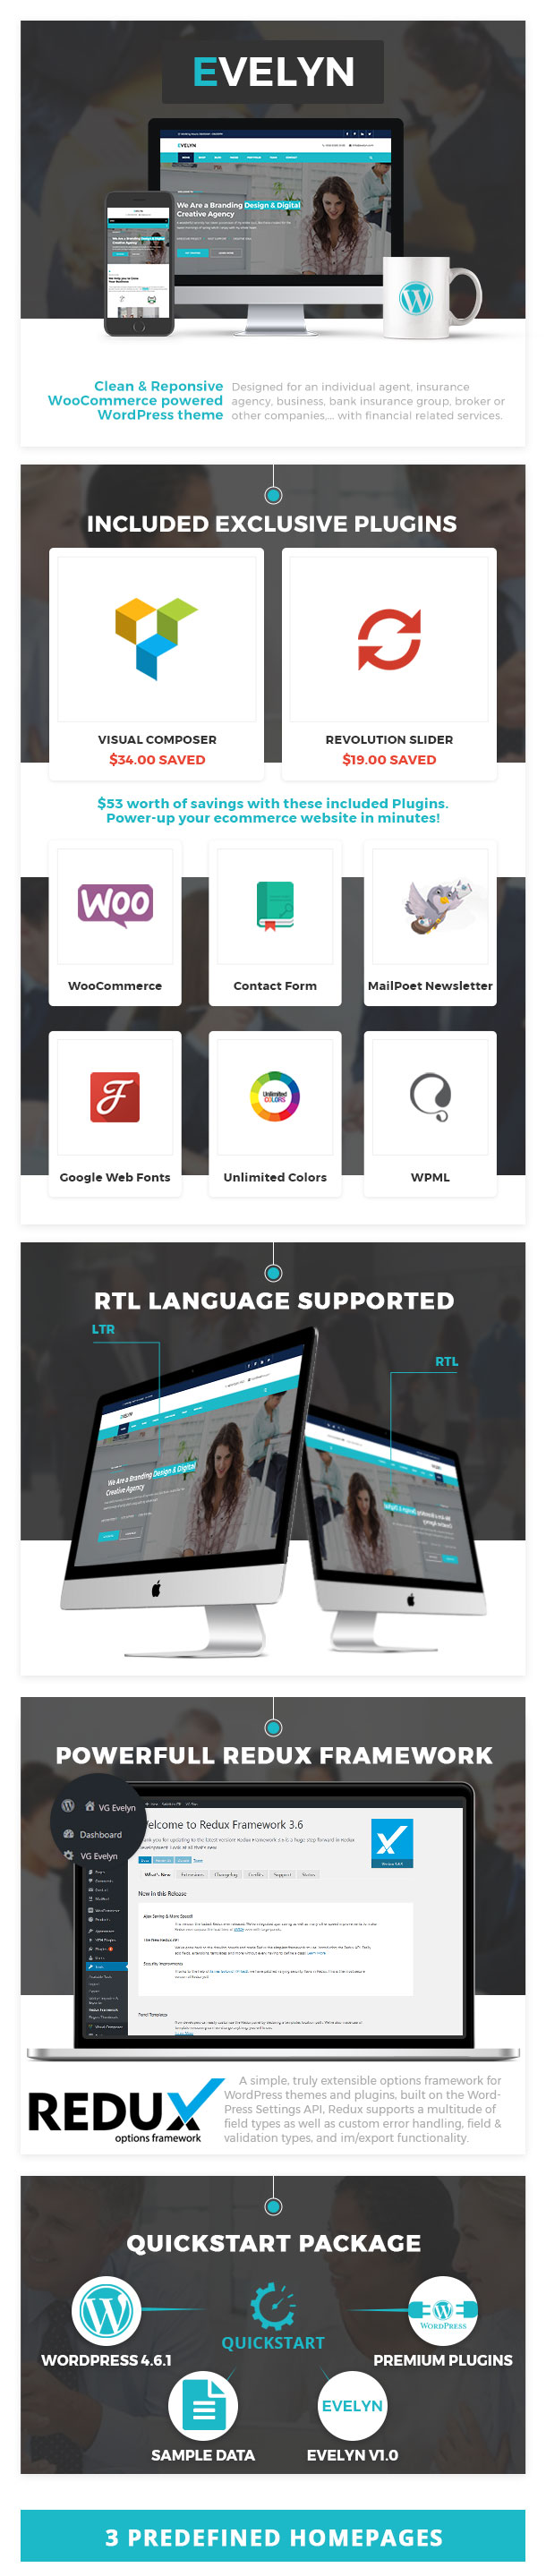 VG Evelyn - Multipurpose Business and Agency WordPress Theme by ...